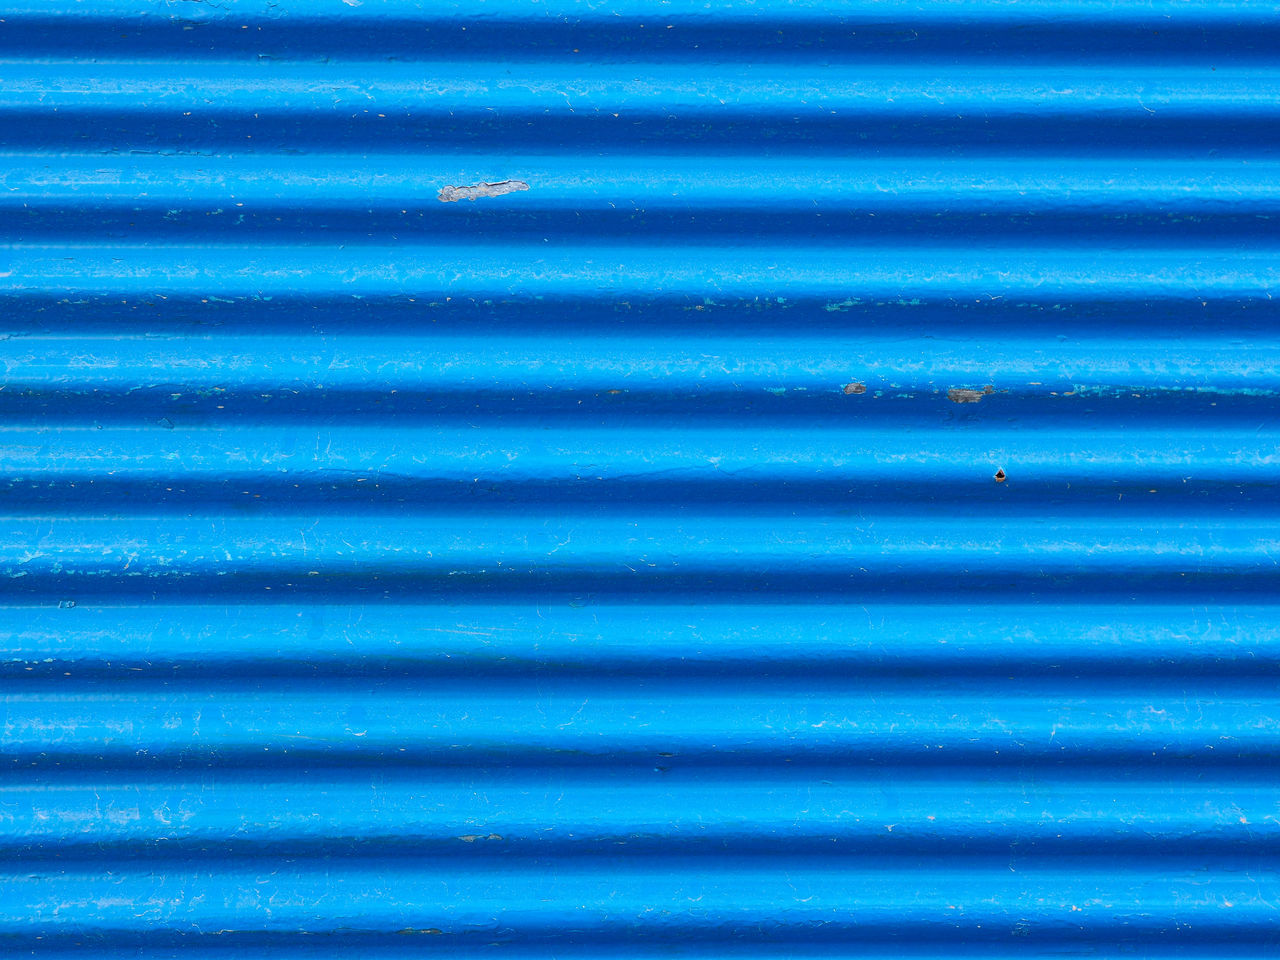 Full Frame Image Of Blue Textured Wall